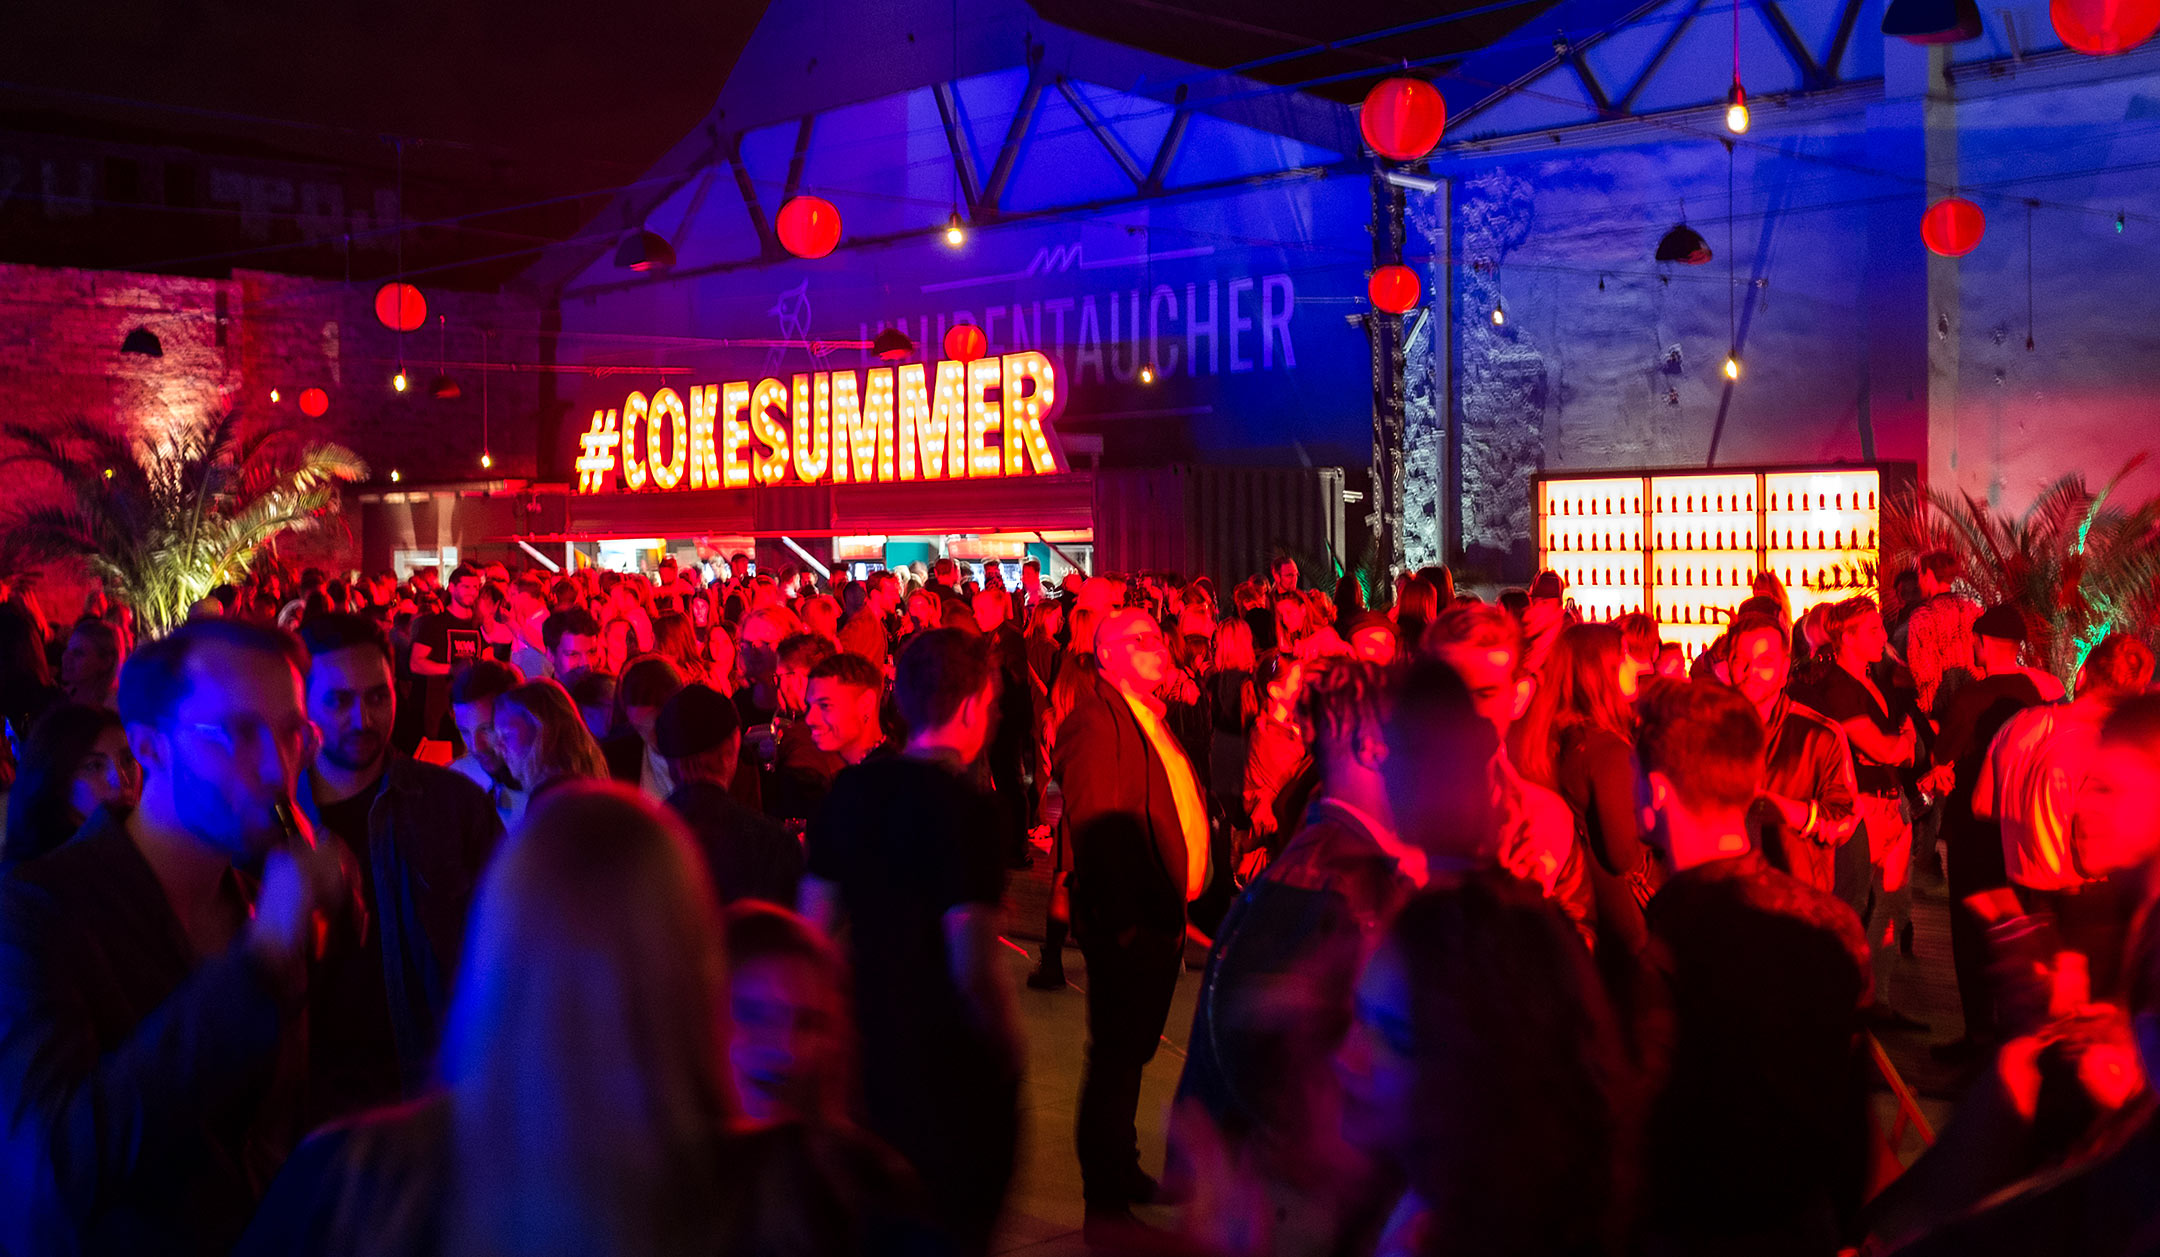 Cokesummer Coca Cola Event Haubentaucher Fashion Week Berlin Sunnyinga